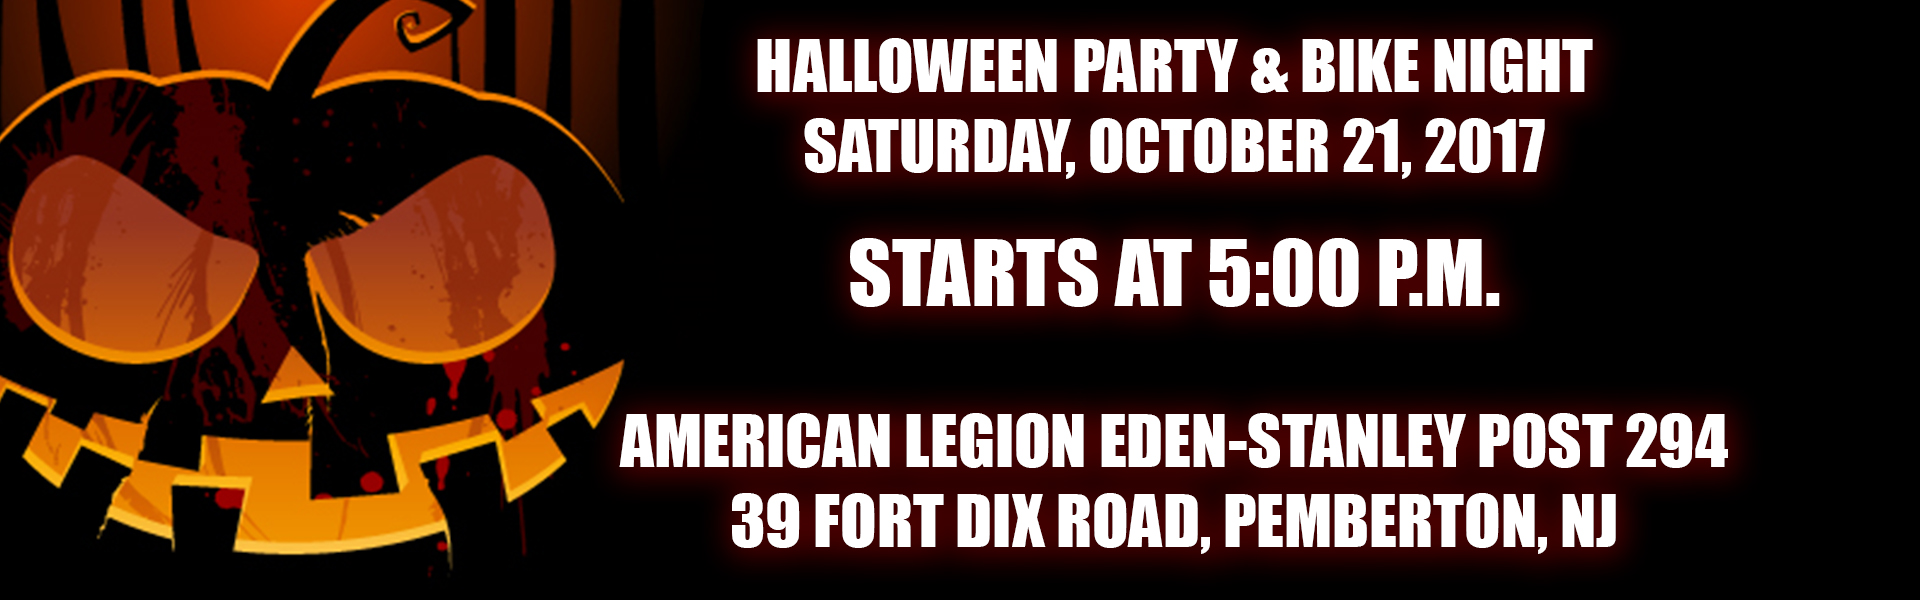 Nam Knights of America Motorcycle Club, Tri-Base Chapter Halloween Party & Bike Night